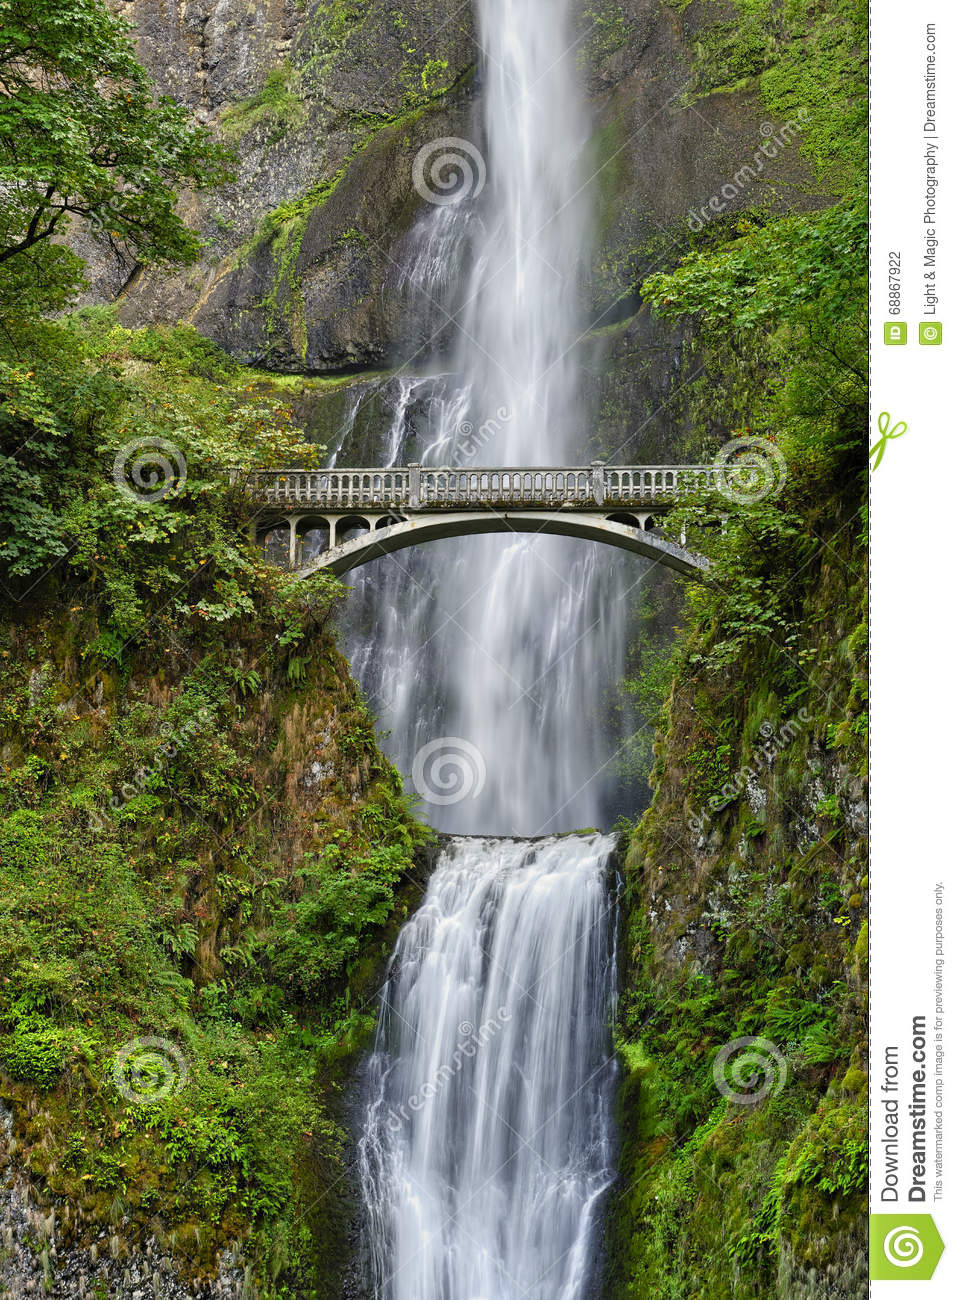 Bridge Over Waterfall Clip Art.